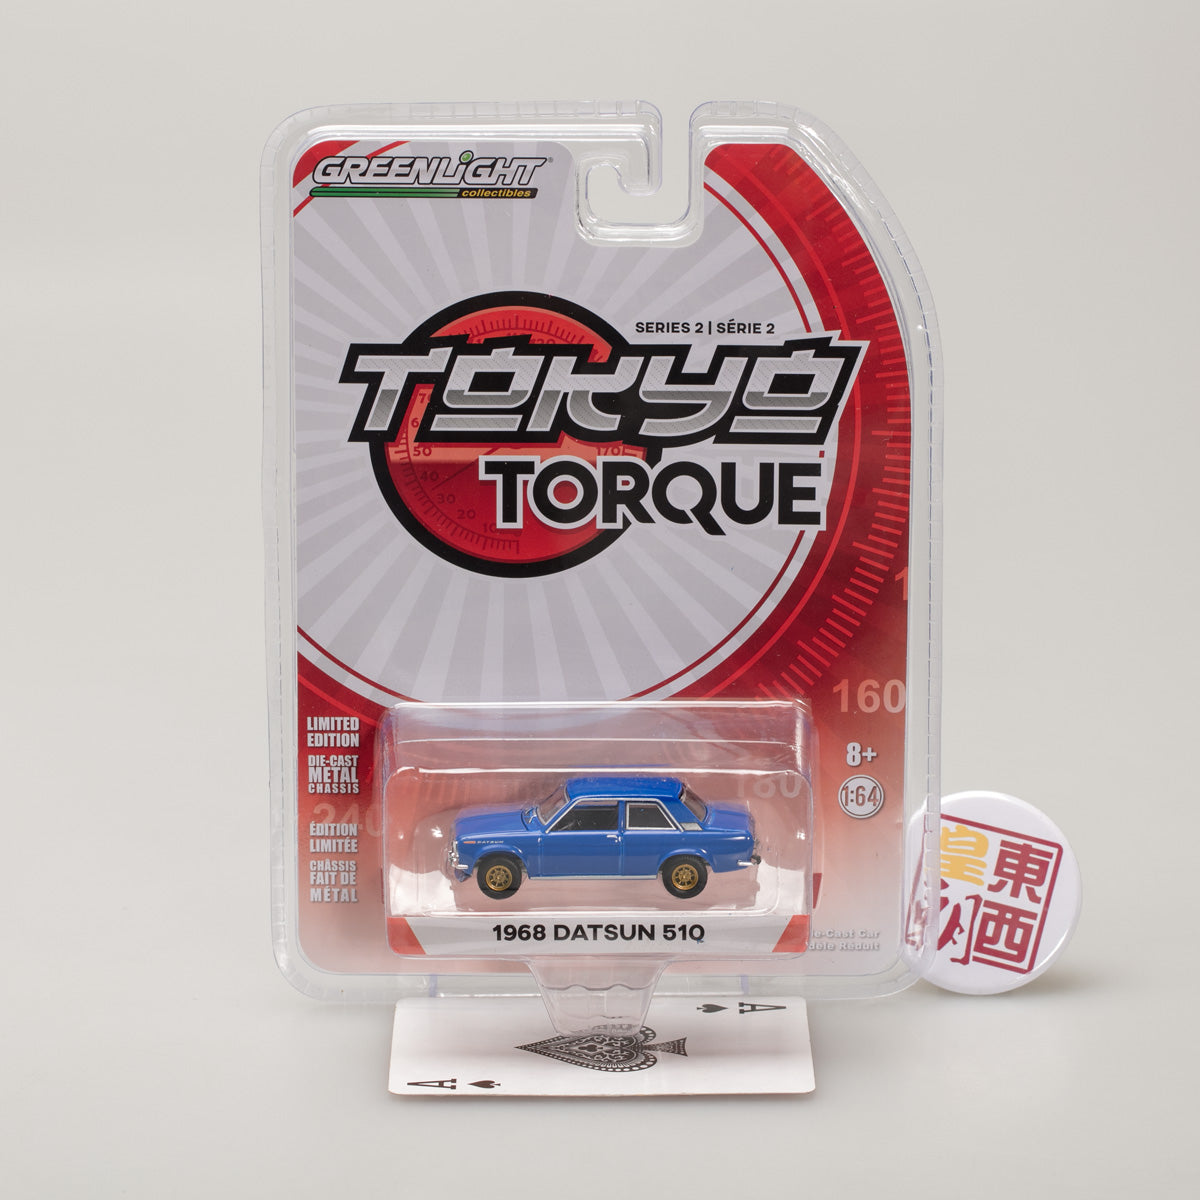 GreenLight 1:64 Tokyo Torque Series 2 - 1968 Datsun 510 Street Racer - Blue with Gold Wheels 29900-A